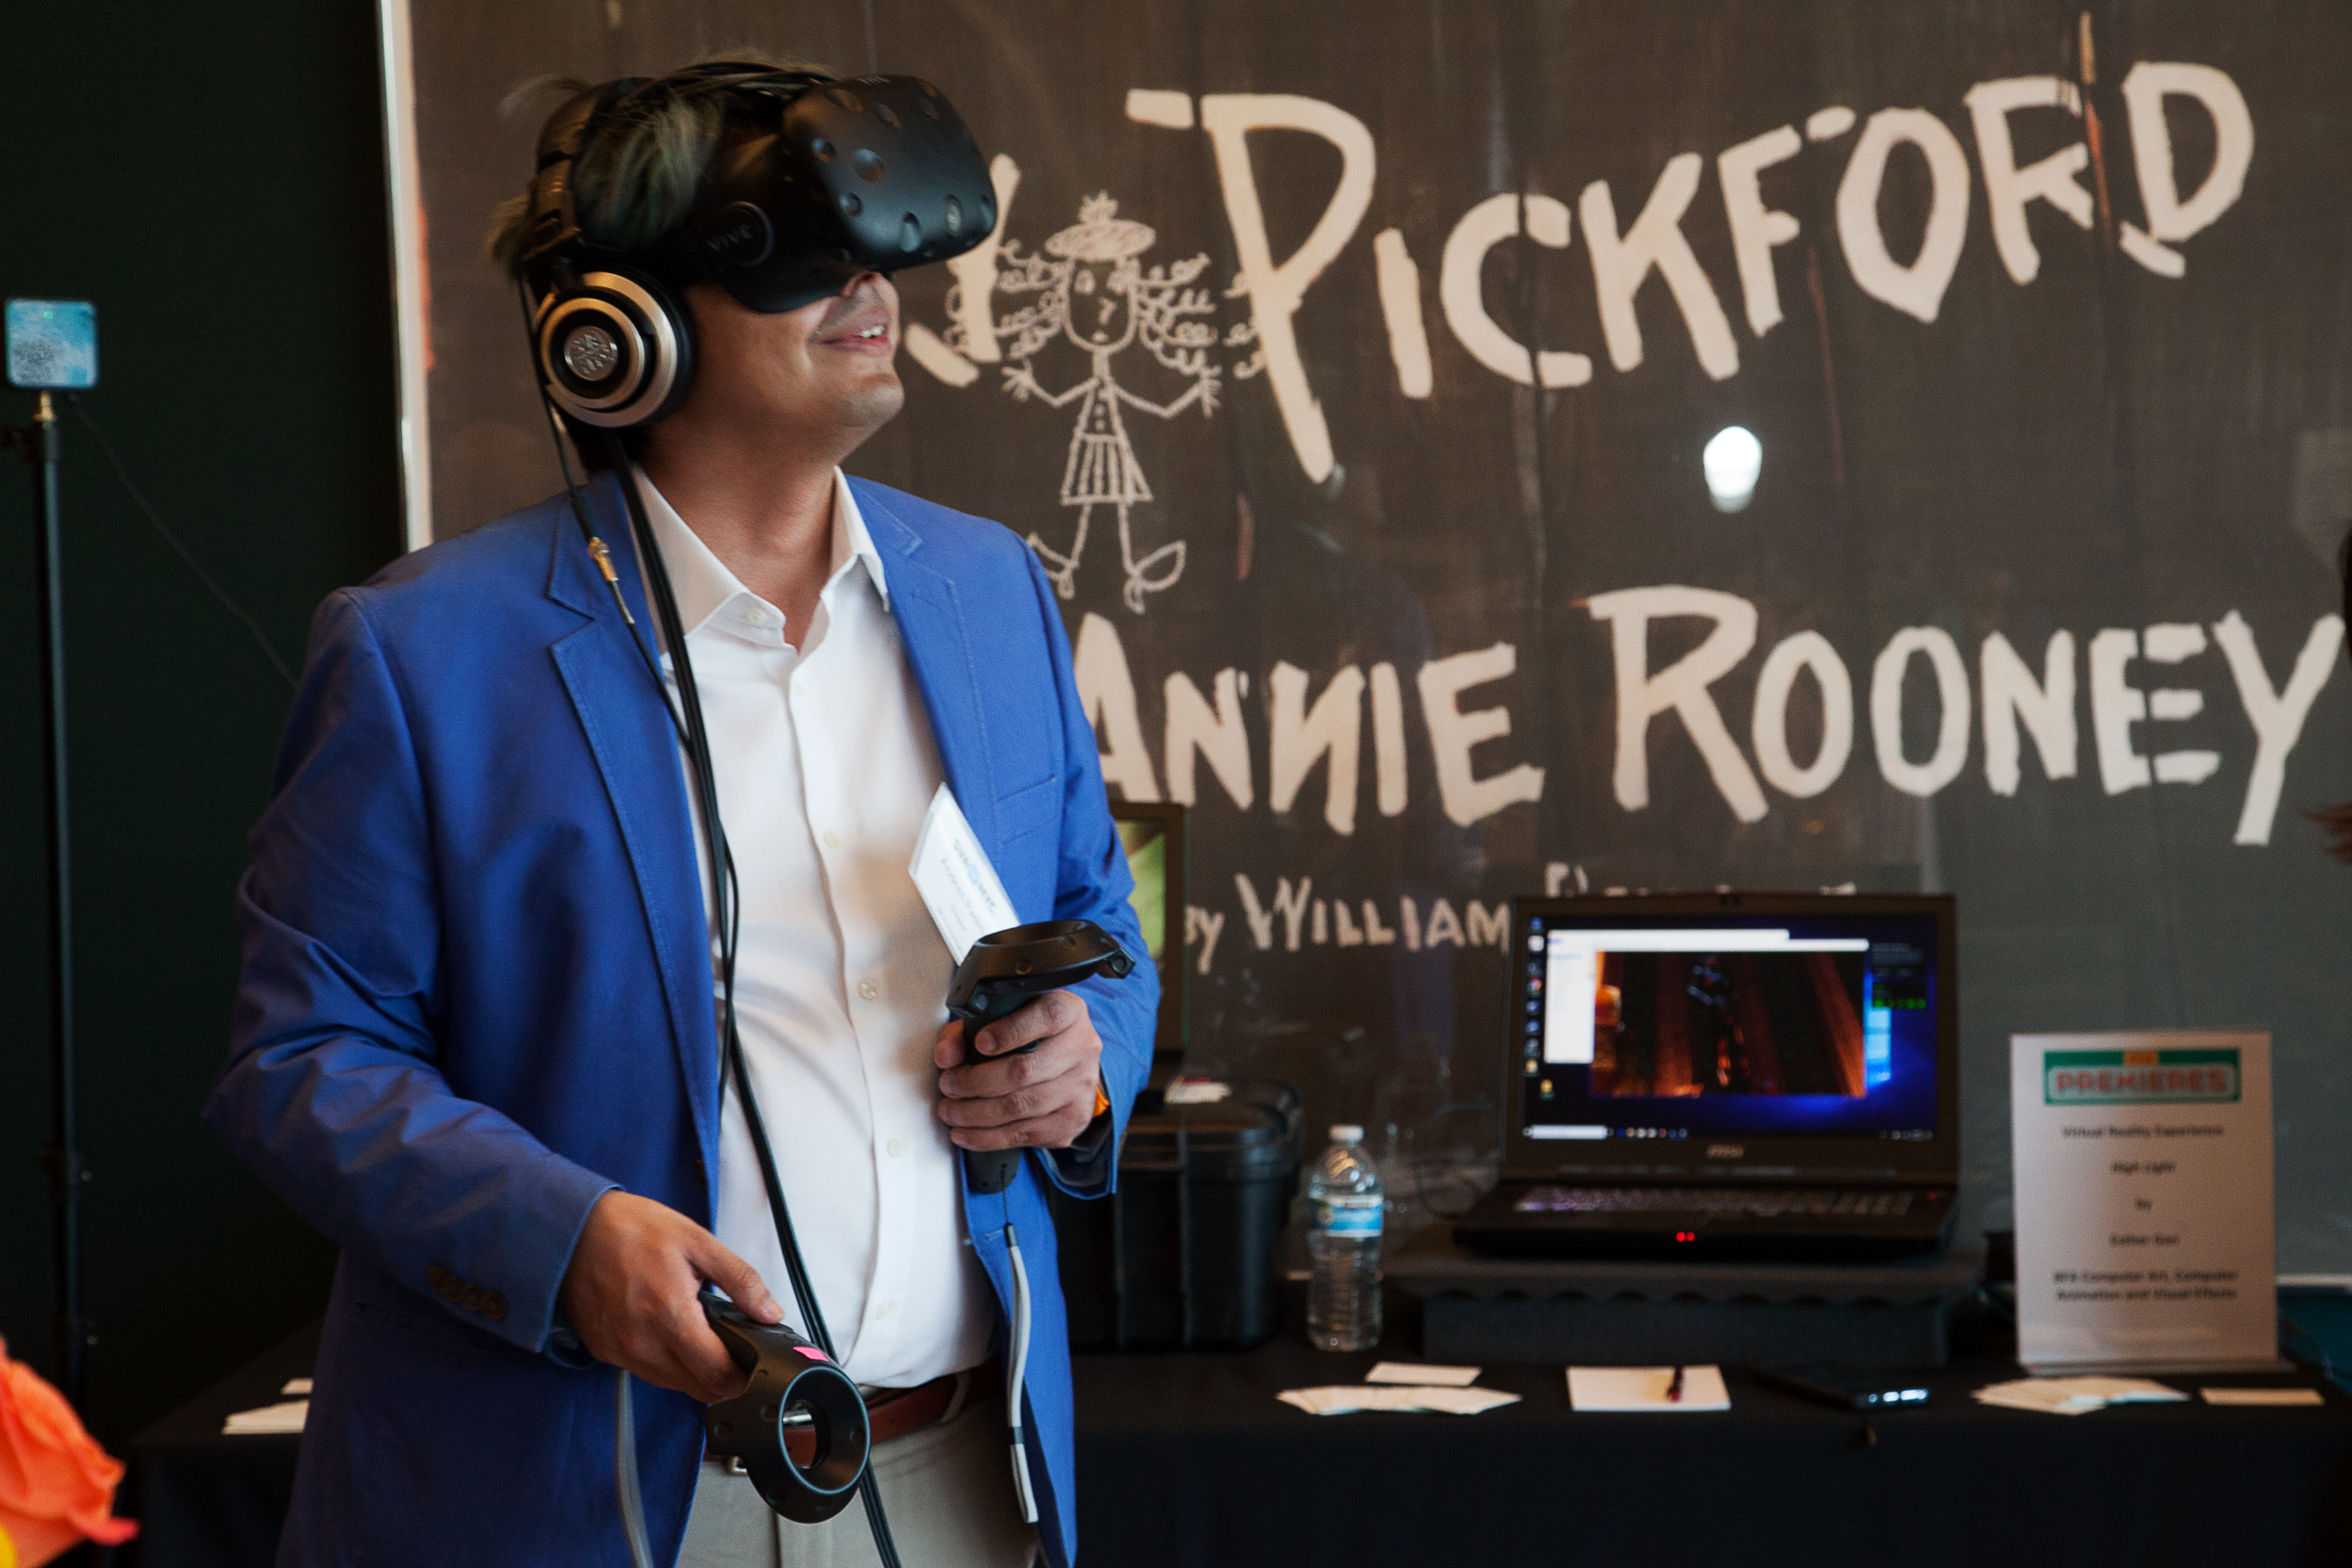 "<p ""="""">In addition to film and animation works, SVA Premieres featured two VR experiences created by members of the class of 2018, for guests to try out in the theater lobby."